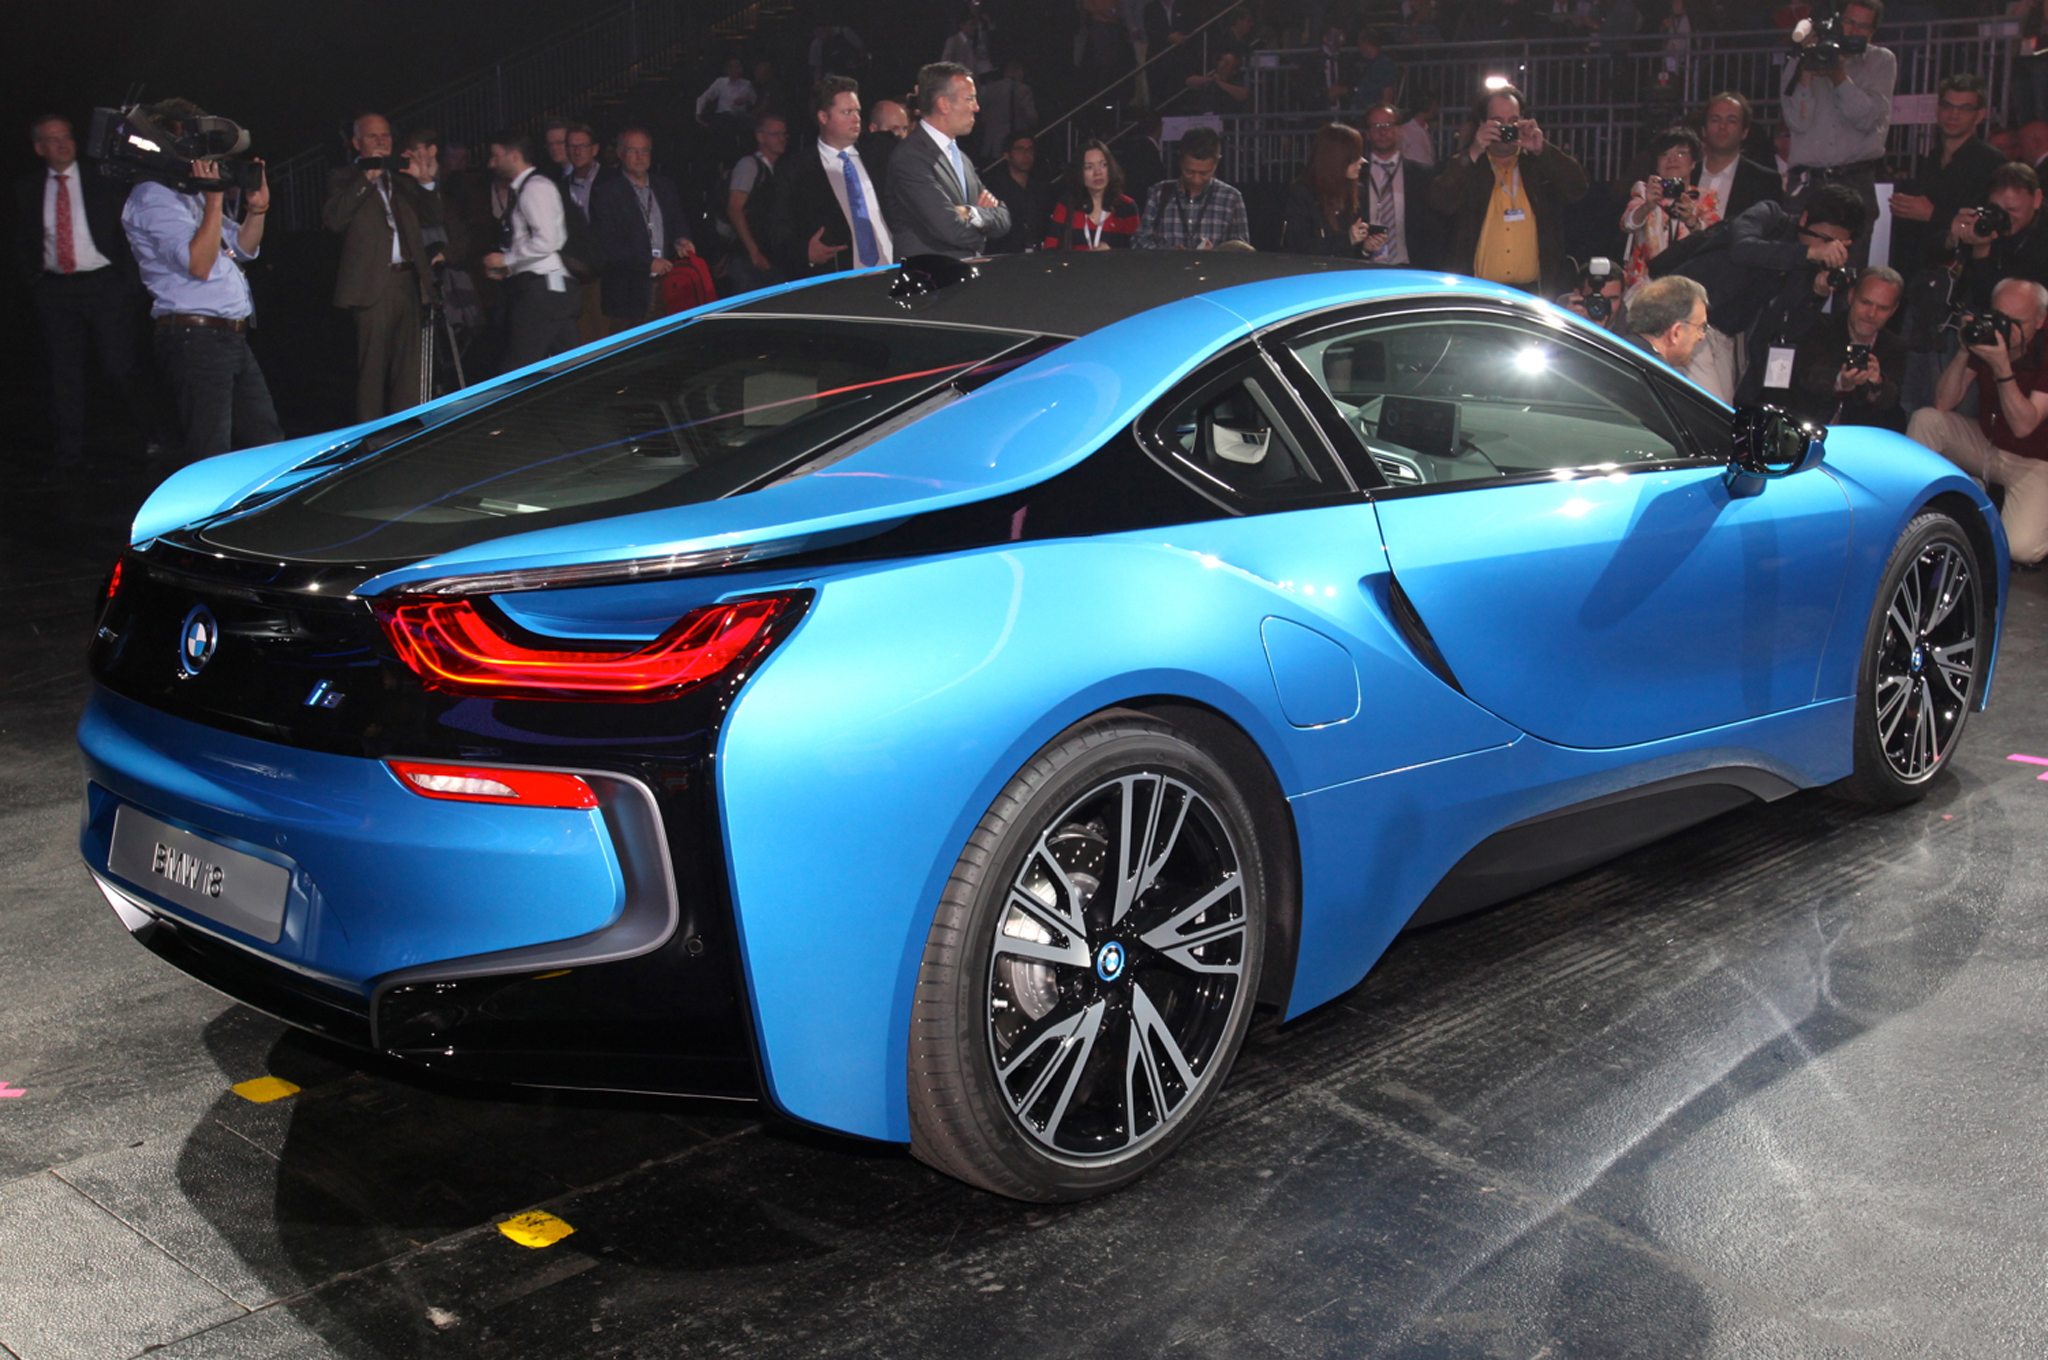 2014 BMW i8 plug in hybrid rear three quarters